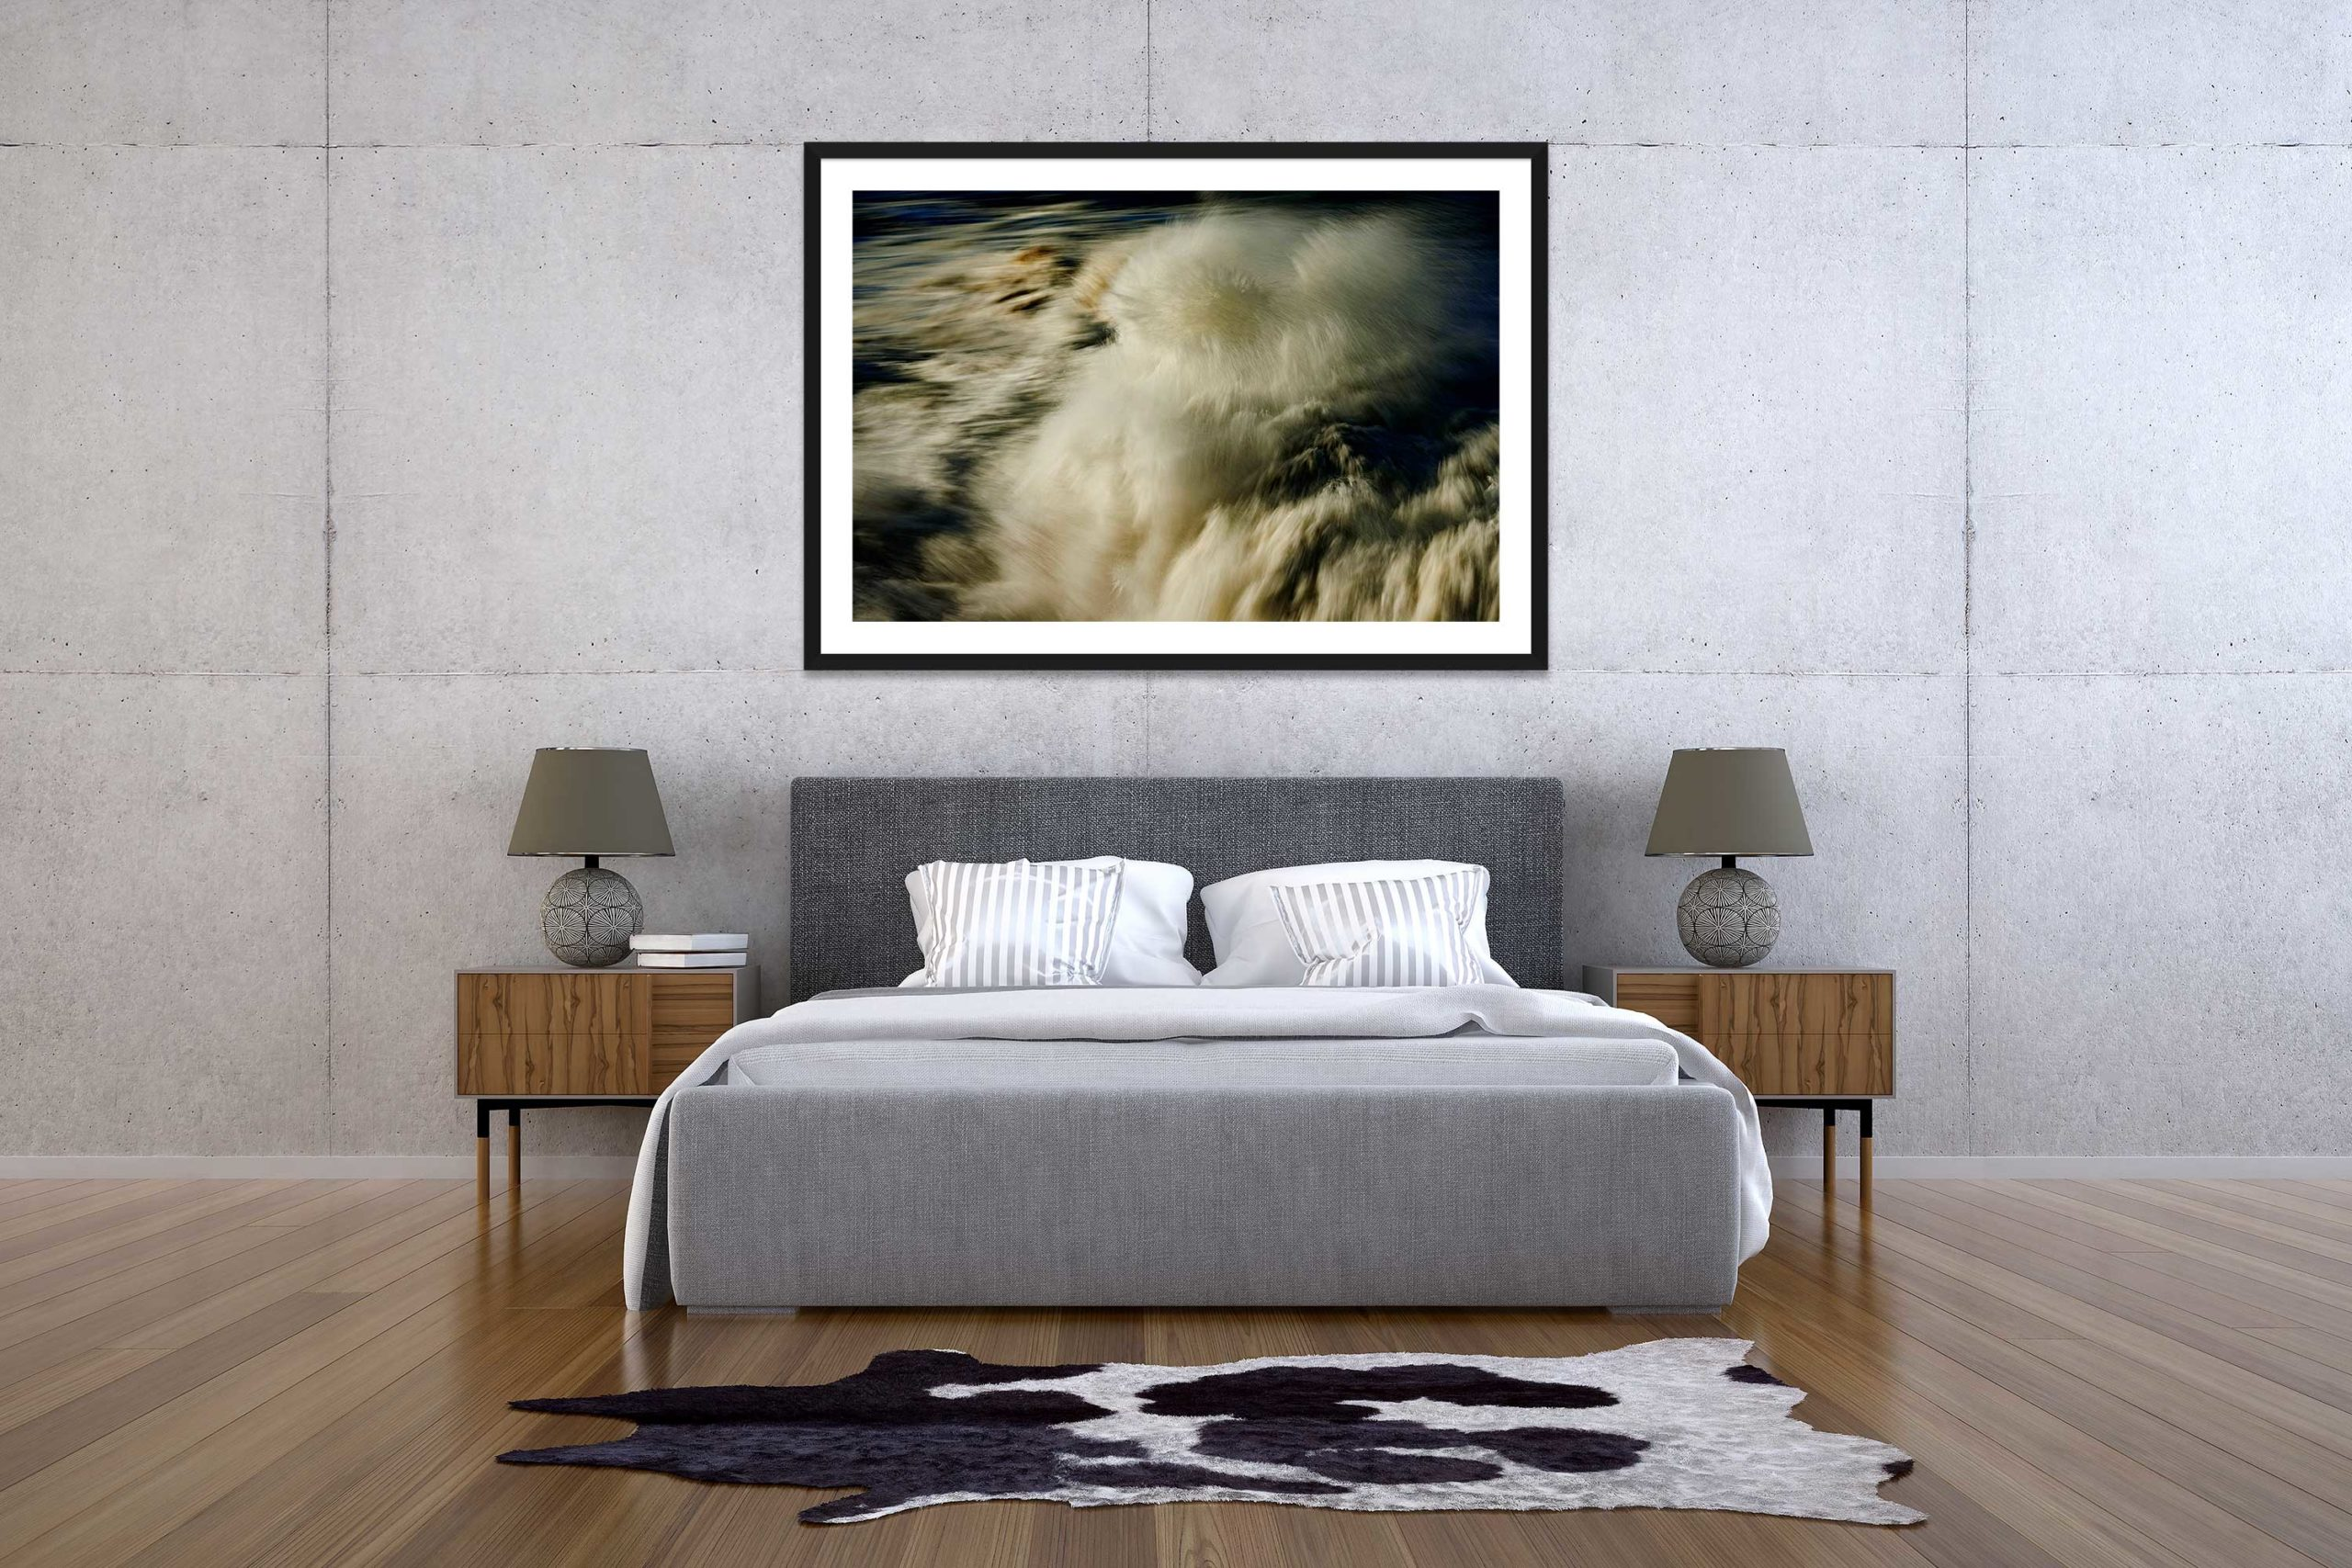 The Storm 3 - Black Frame - The Storm Collection - Fine Art Photography by Toby Dixon